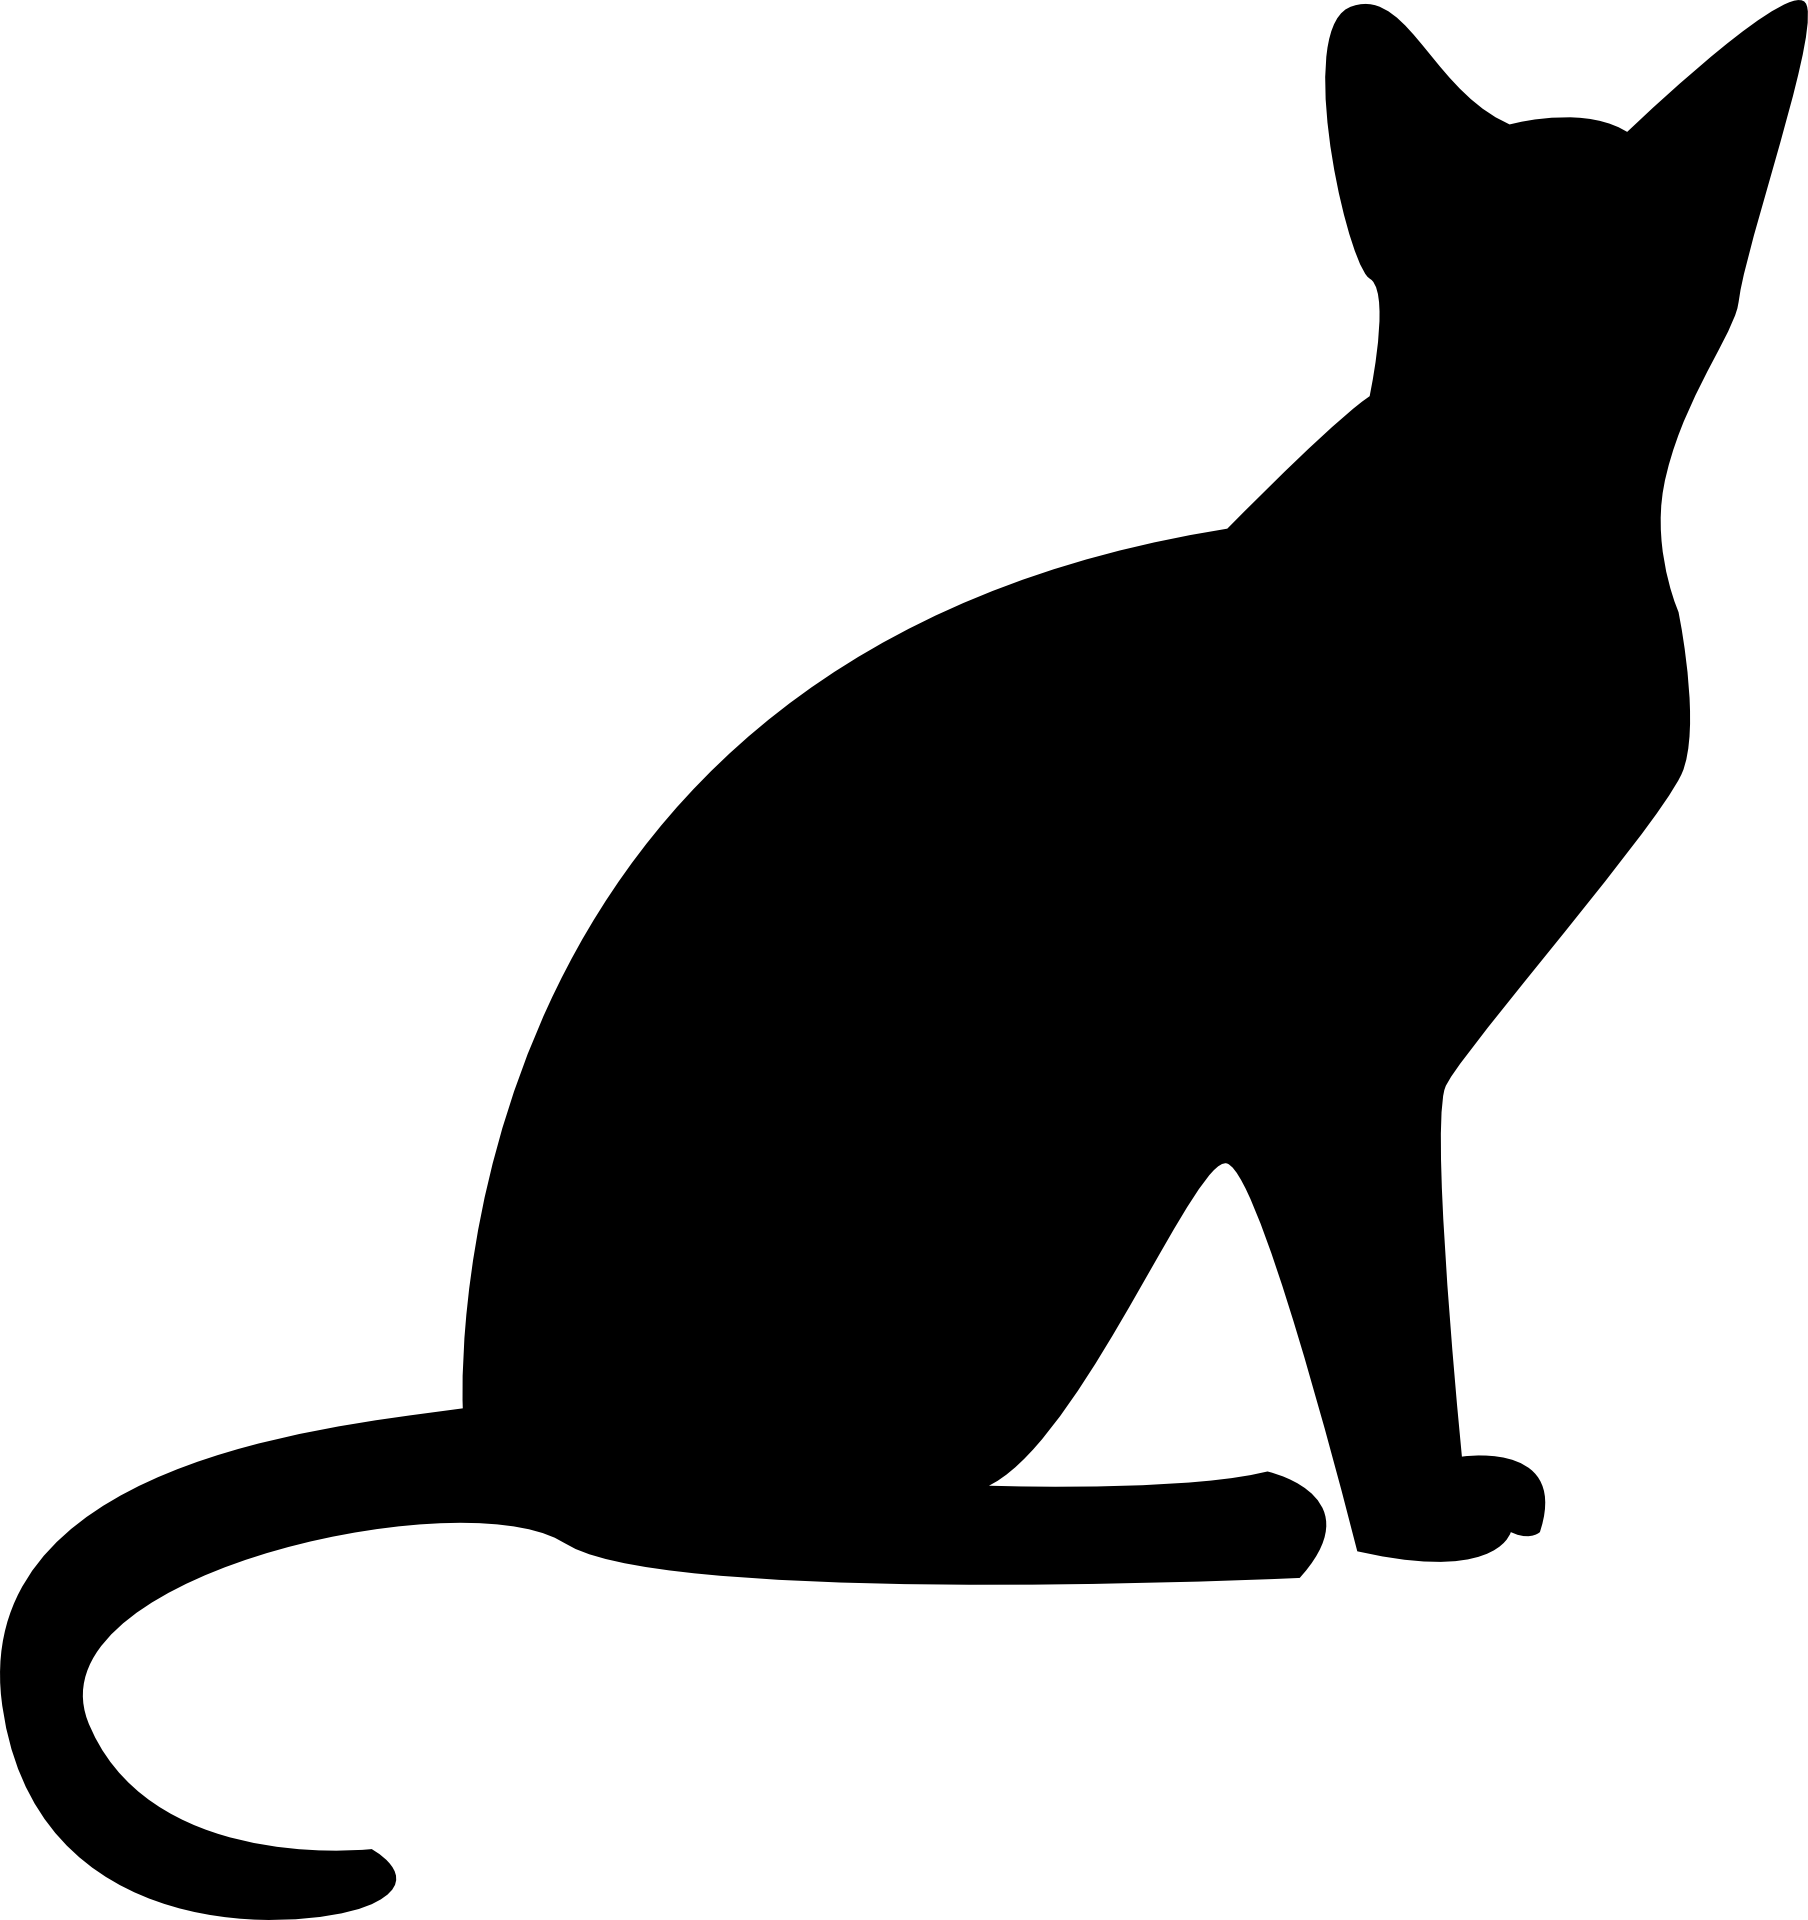 cat clipart transparent background - HD 1808×1920